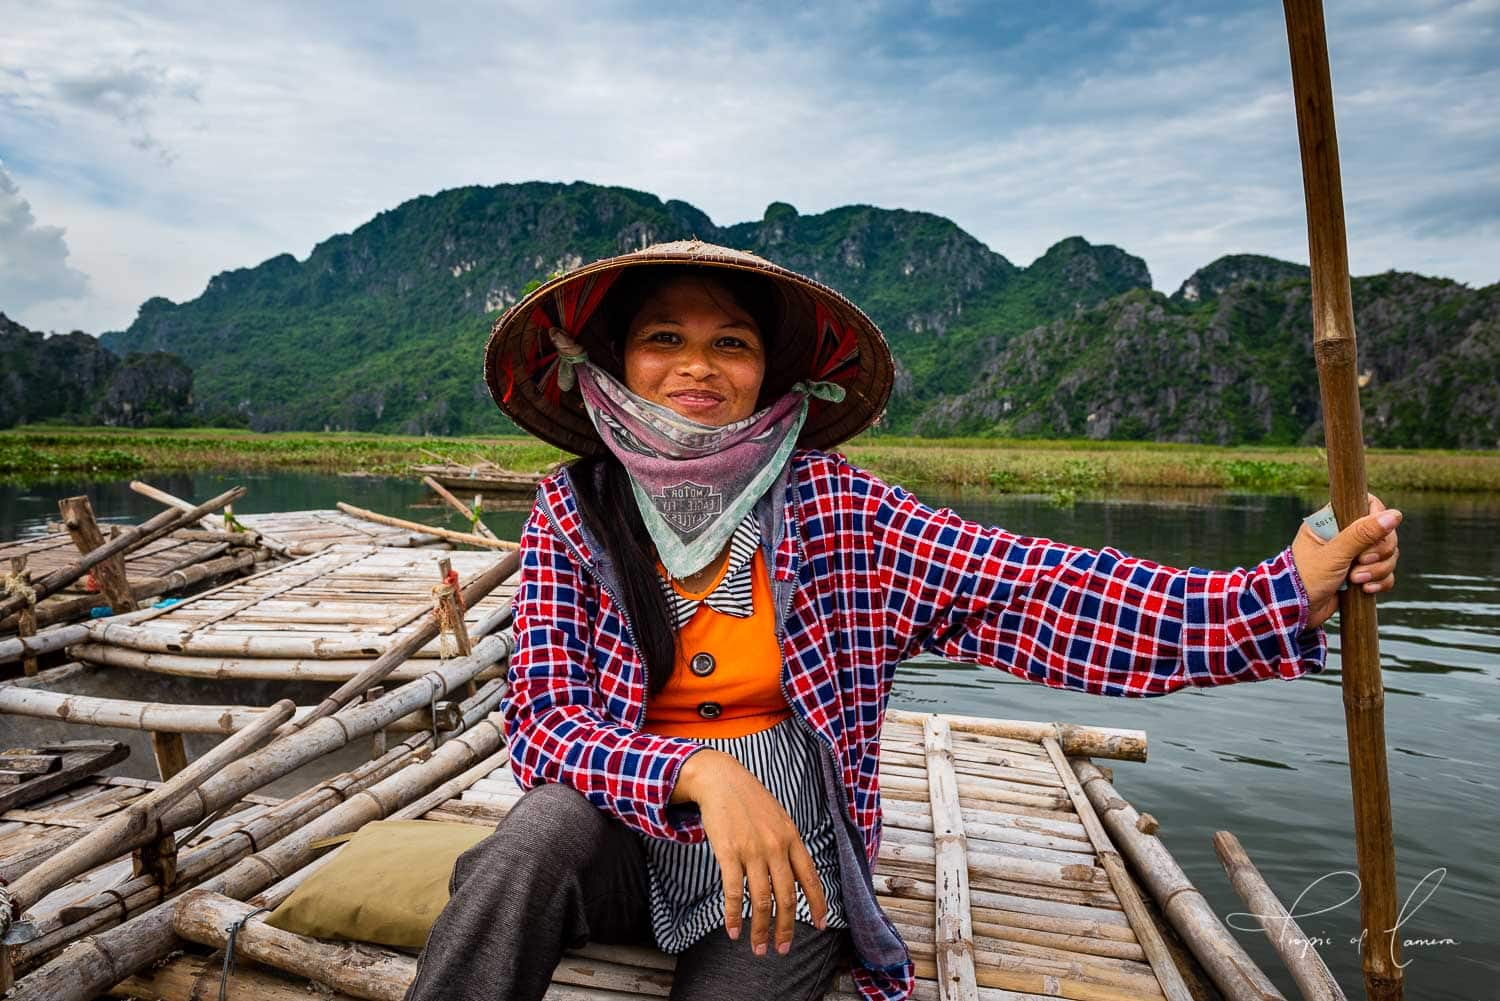 Boat driver smiling for a photo in Ninh Binh, Vietnam